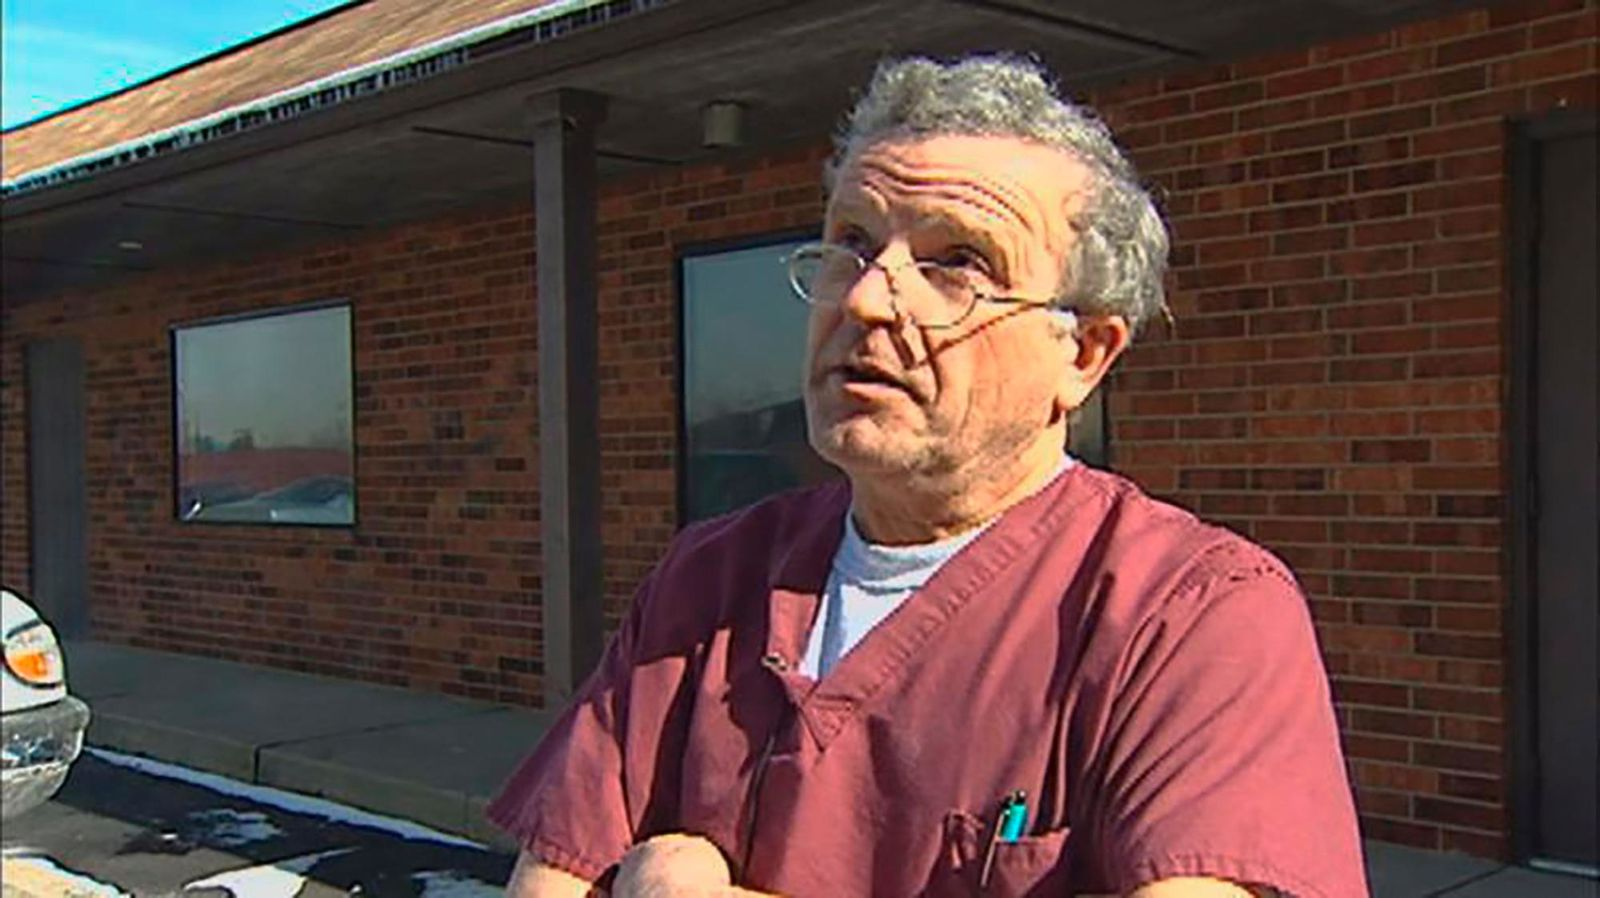 FILE - This image made from a Dec. 1, 2015, video provided by WNDU-TV shows Ulrich Klopfer in South Bend, Ind. Officials whose offices are investigating the discovery of more than 2,200 medically preserved fetal remains at an Illinois house of Dr. Klopfer who performed abortions for decades in Indiana will hold a press conference on Thursday, Sept. 19, 2019, to discuss the case. Klopfer died earlier this month. (WNDU-TV via AP, File)